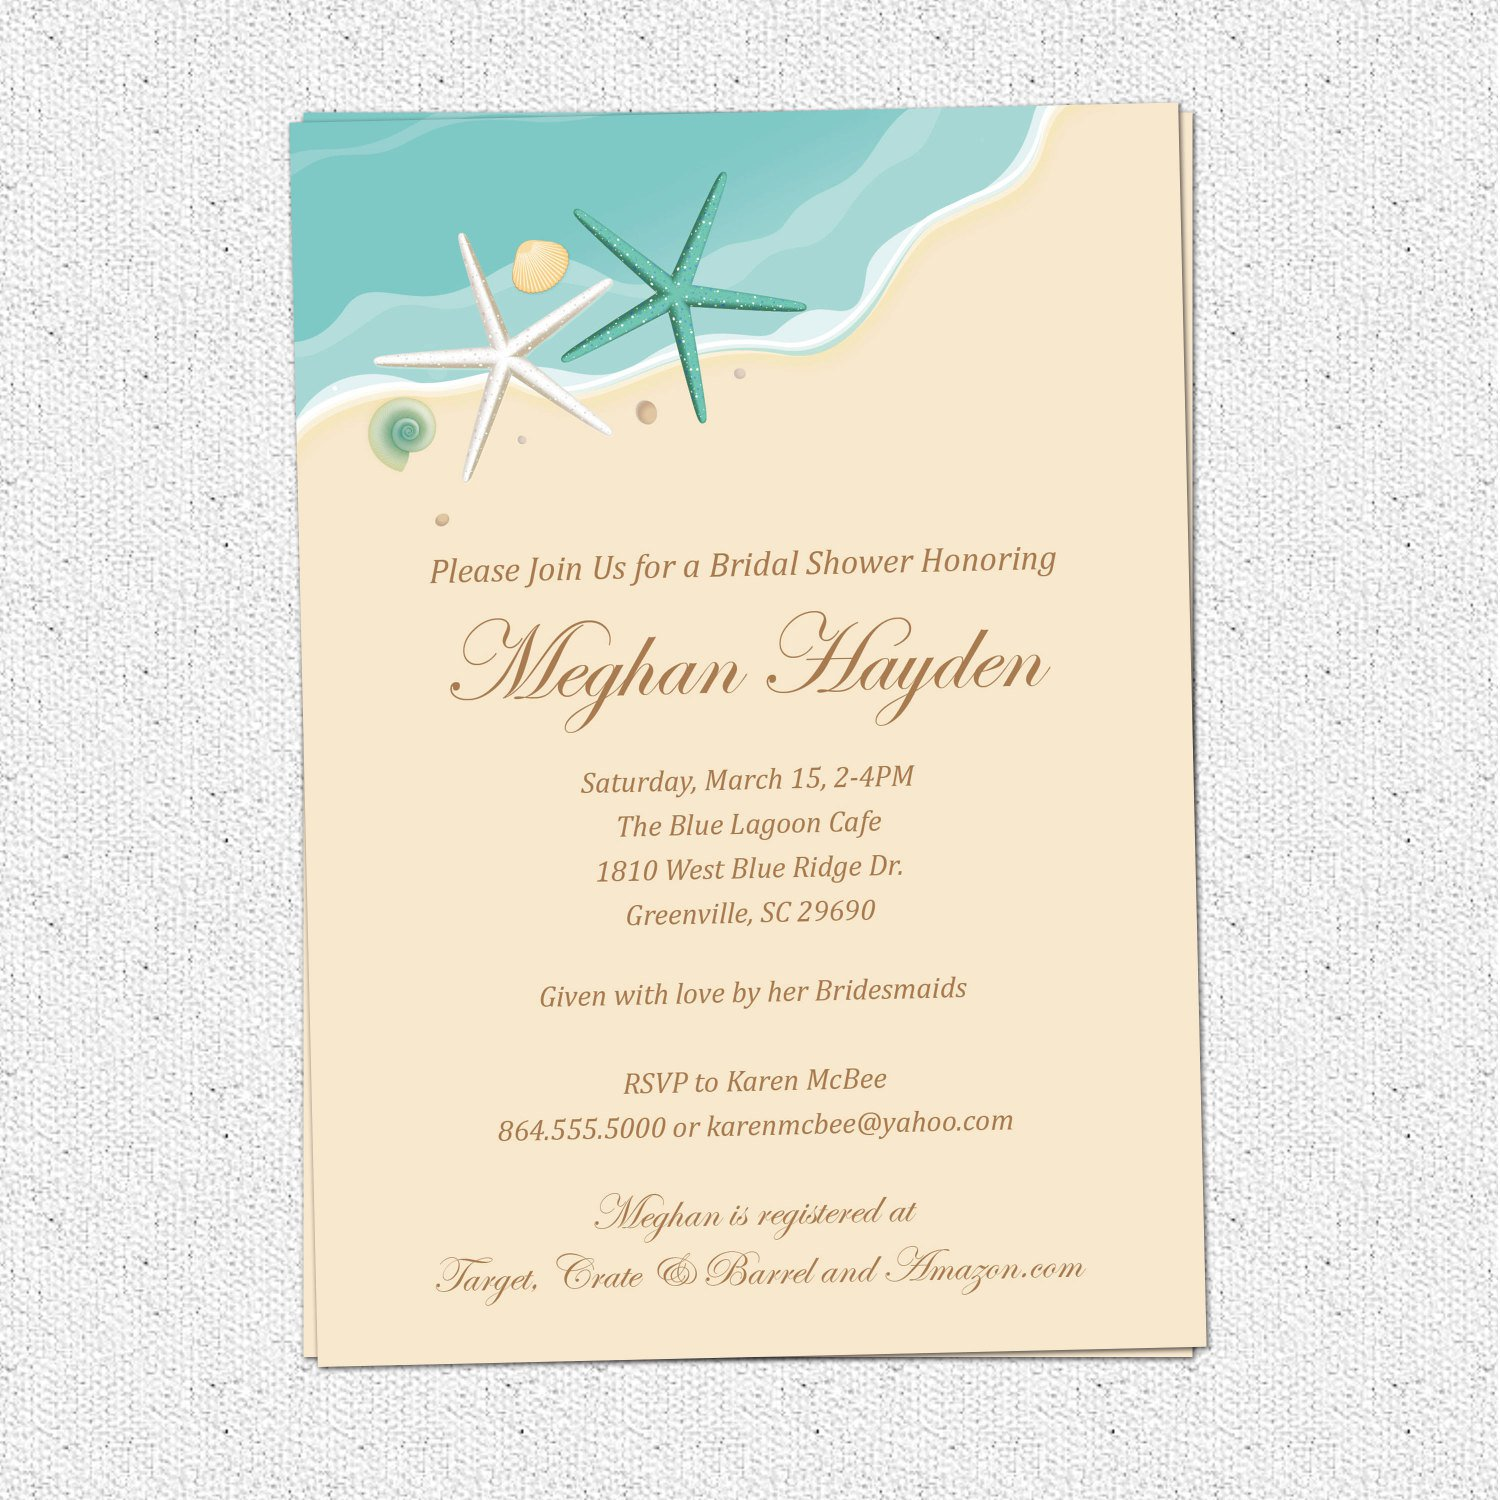 Beach Wedding Invitation Wording: Beach Wedding Invitations Blank